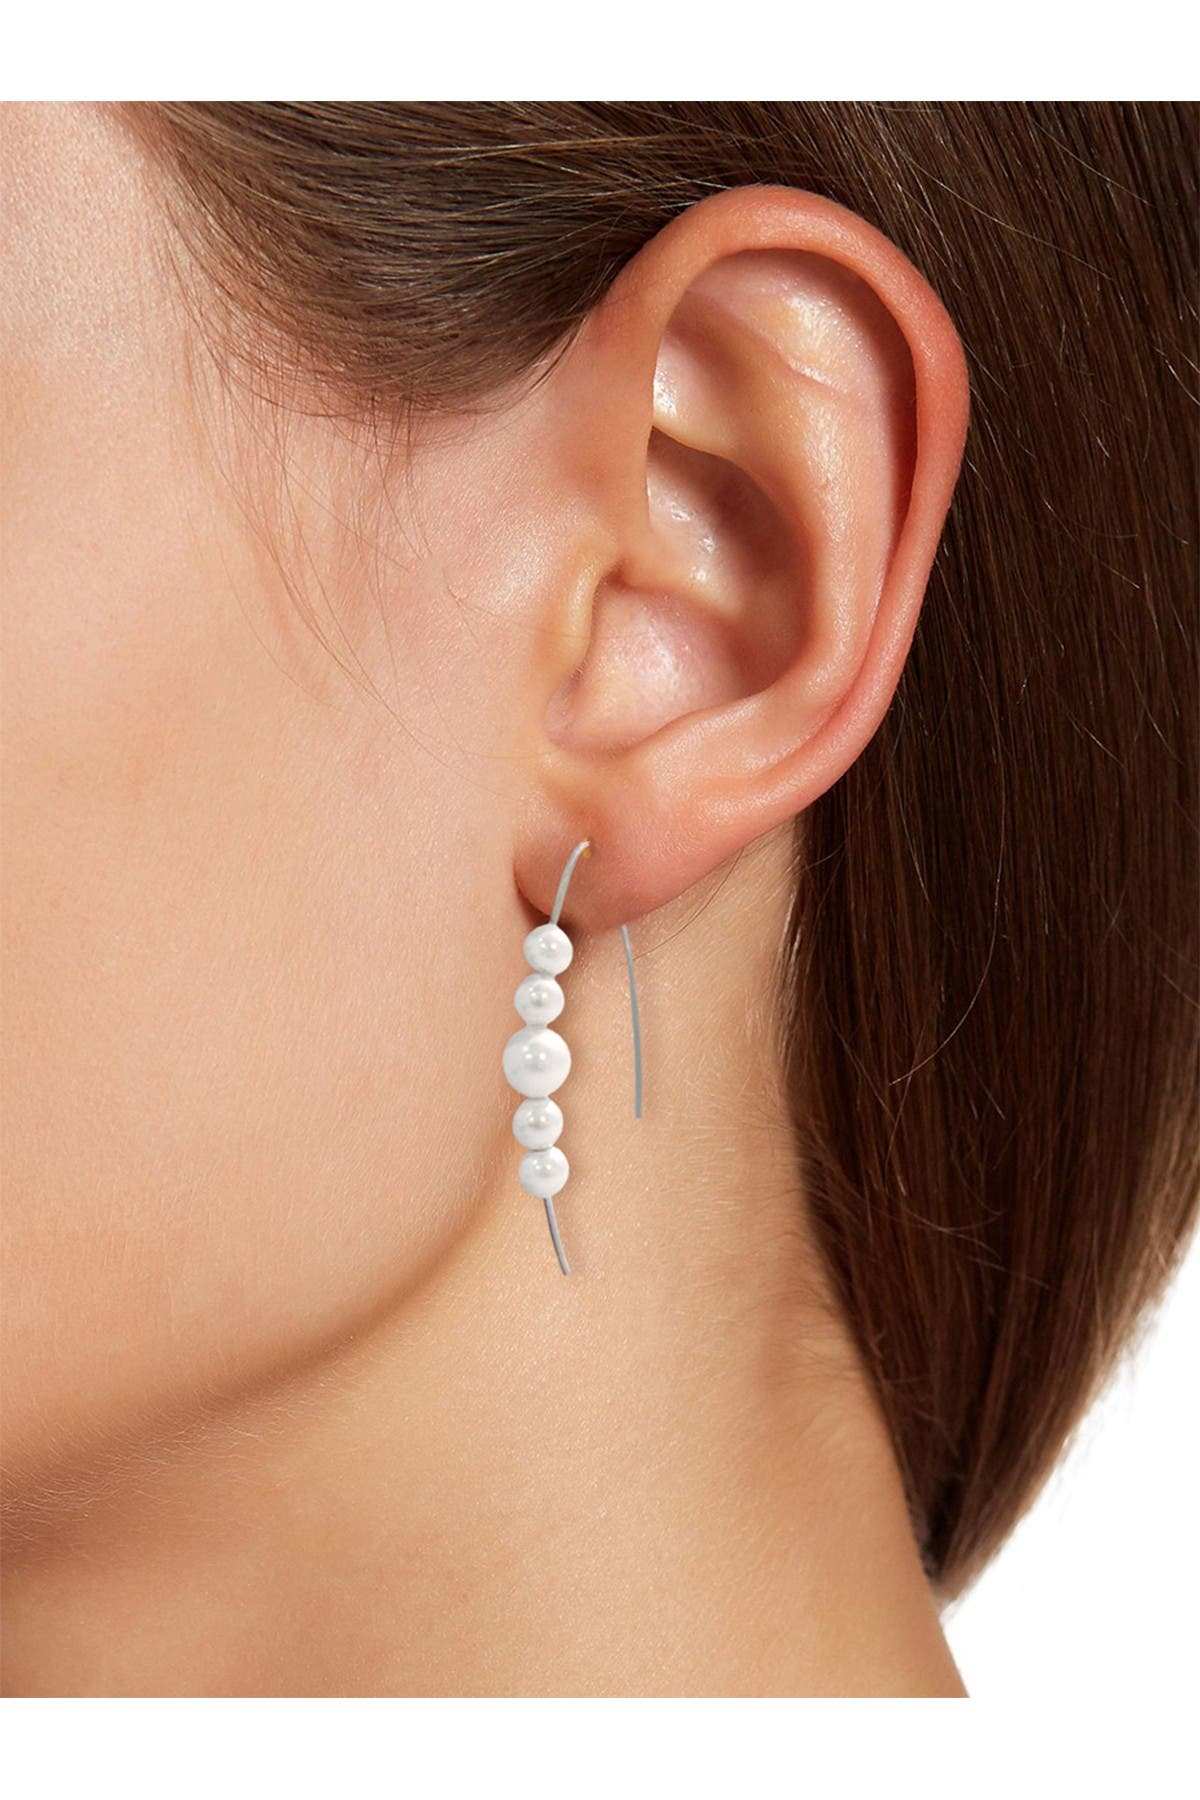 Image of Savvy Cie Sterling Silver Graduated 5-8mm Cultured Freshwater Pearl Threader Earrings